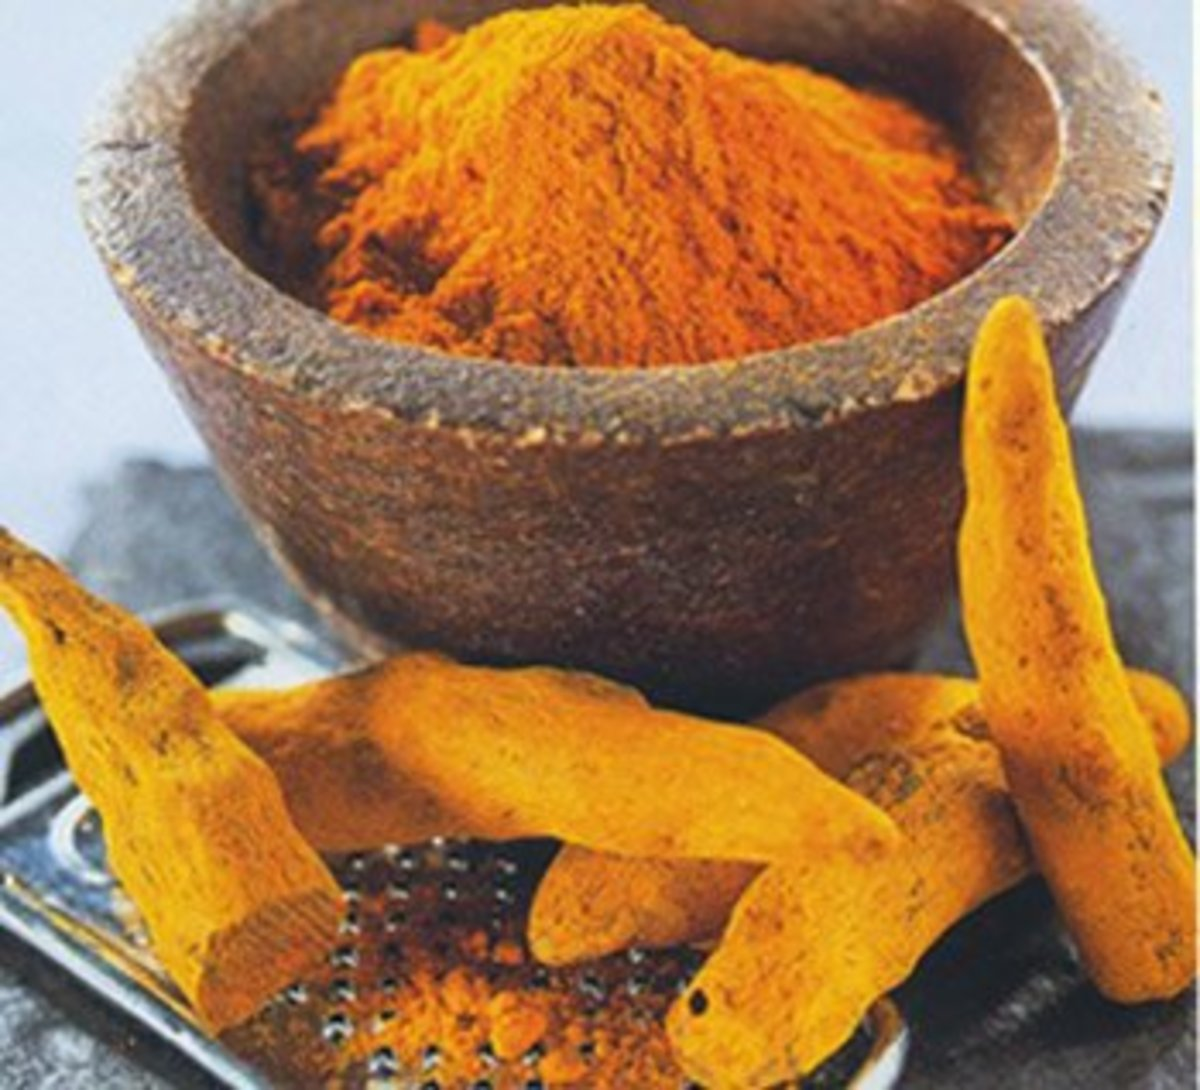 Turmeric - The Magical Antioxidant and Anti-inflammatory Spice